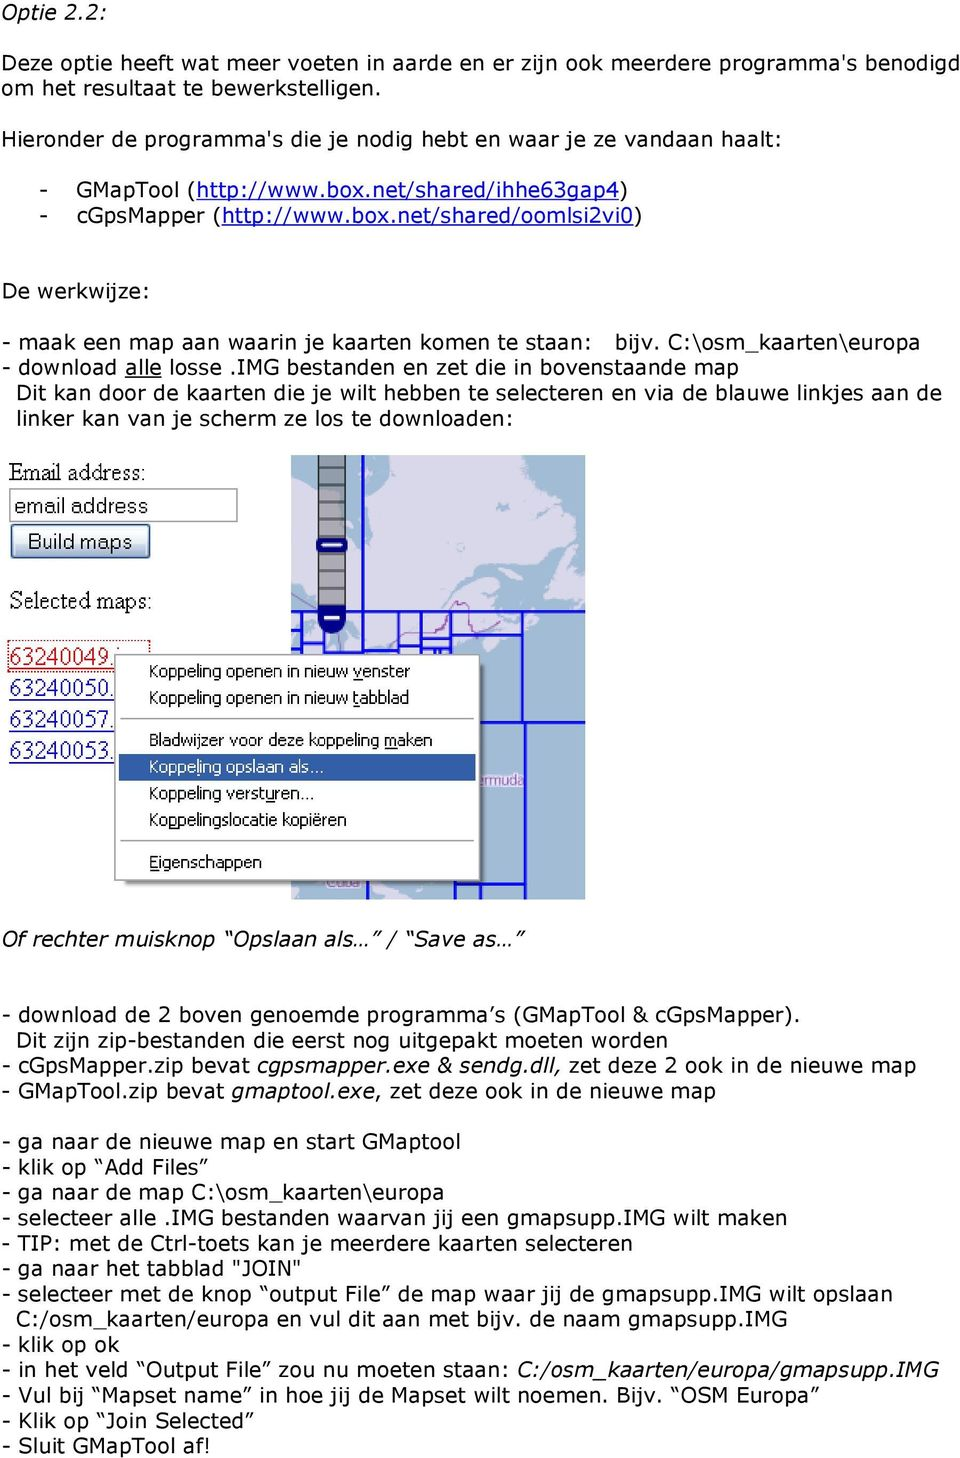 C:\osm_kaarten\europa - download alle losse.